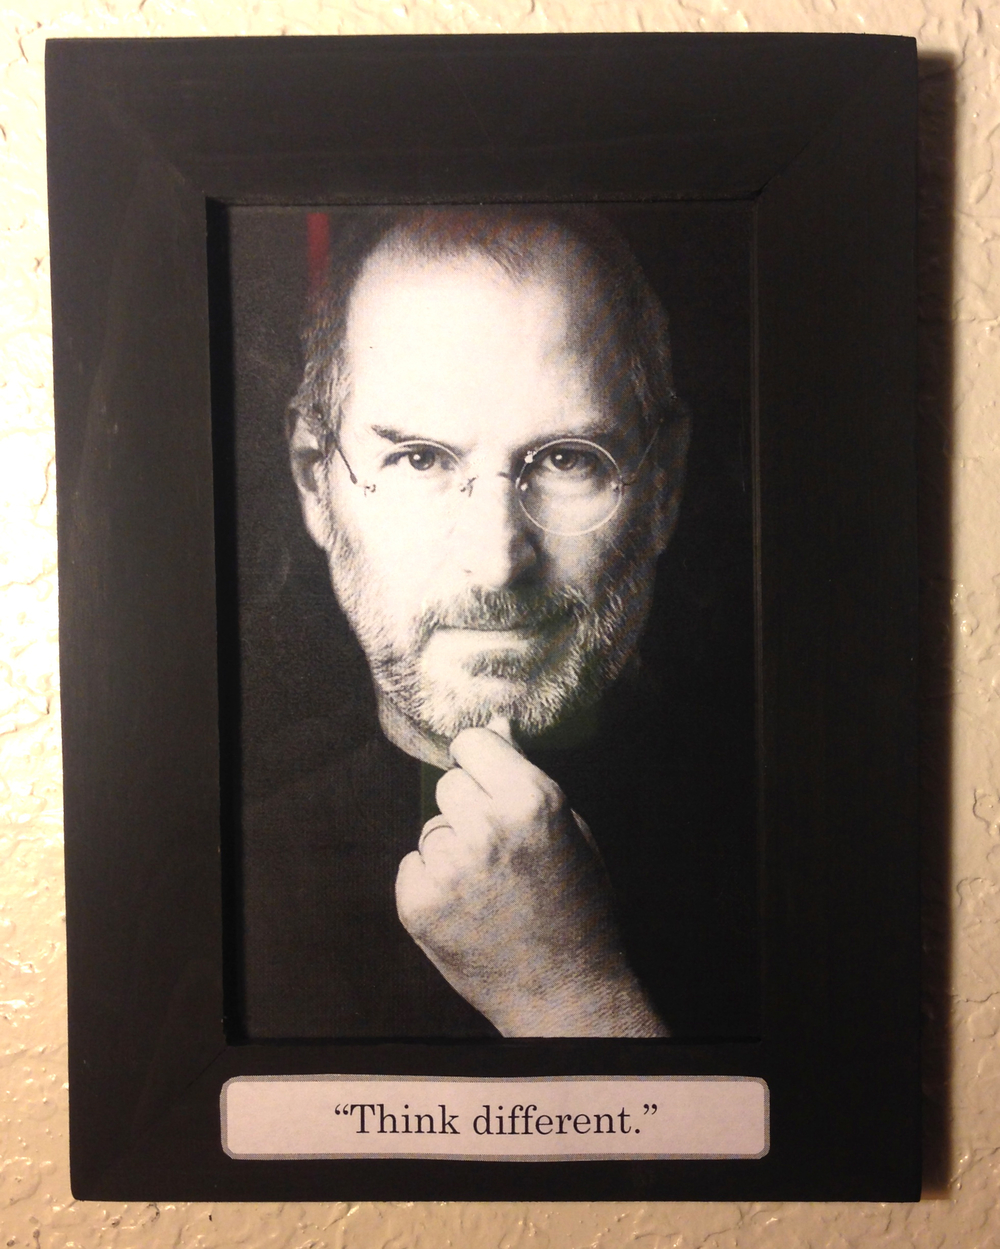 steve-jobs-portrait.jpg